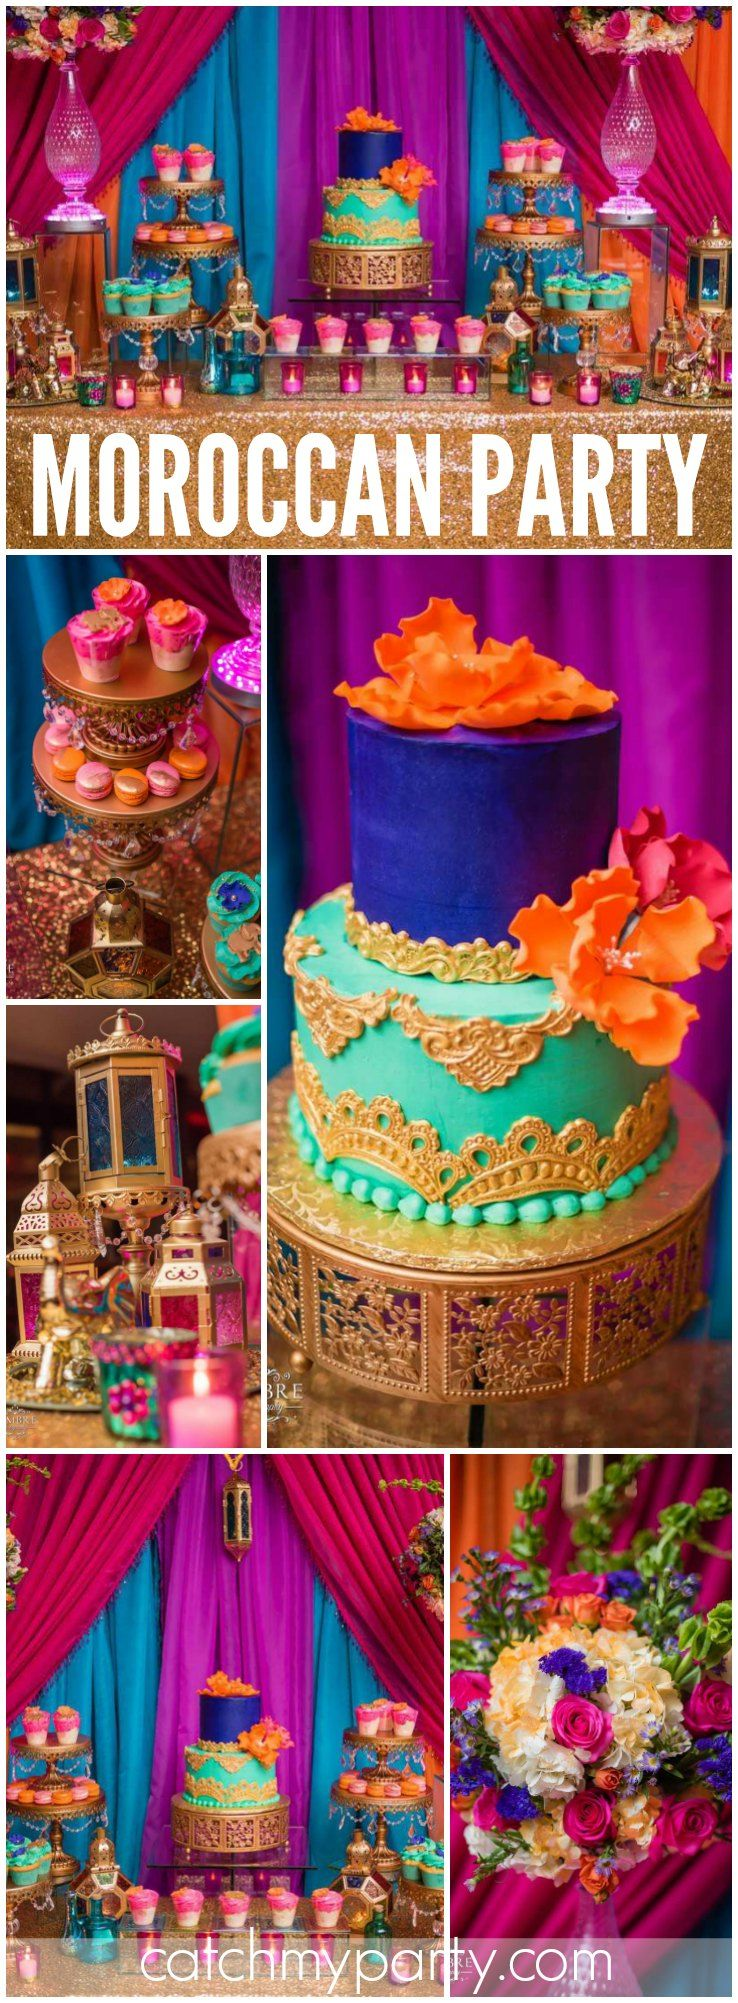 8913feff44d What an elaborate Moroccan party done in gorgeous jewel tones! See more party  ideas at CatchMyParty.com!